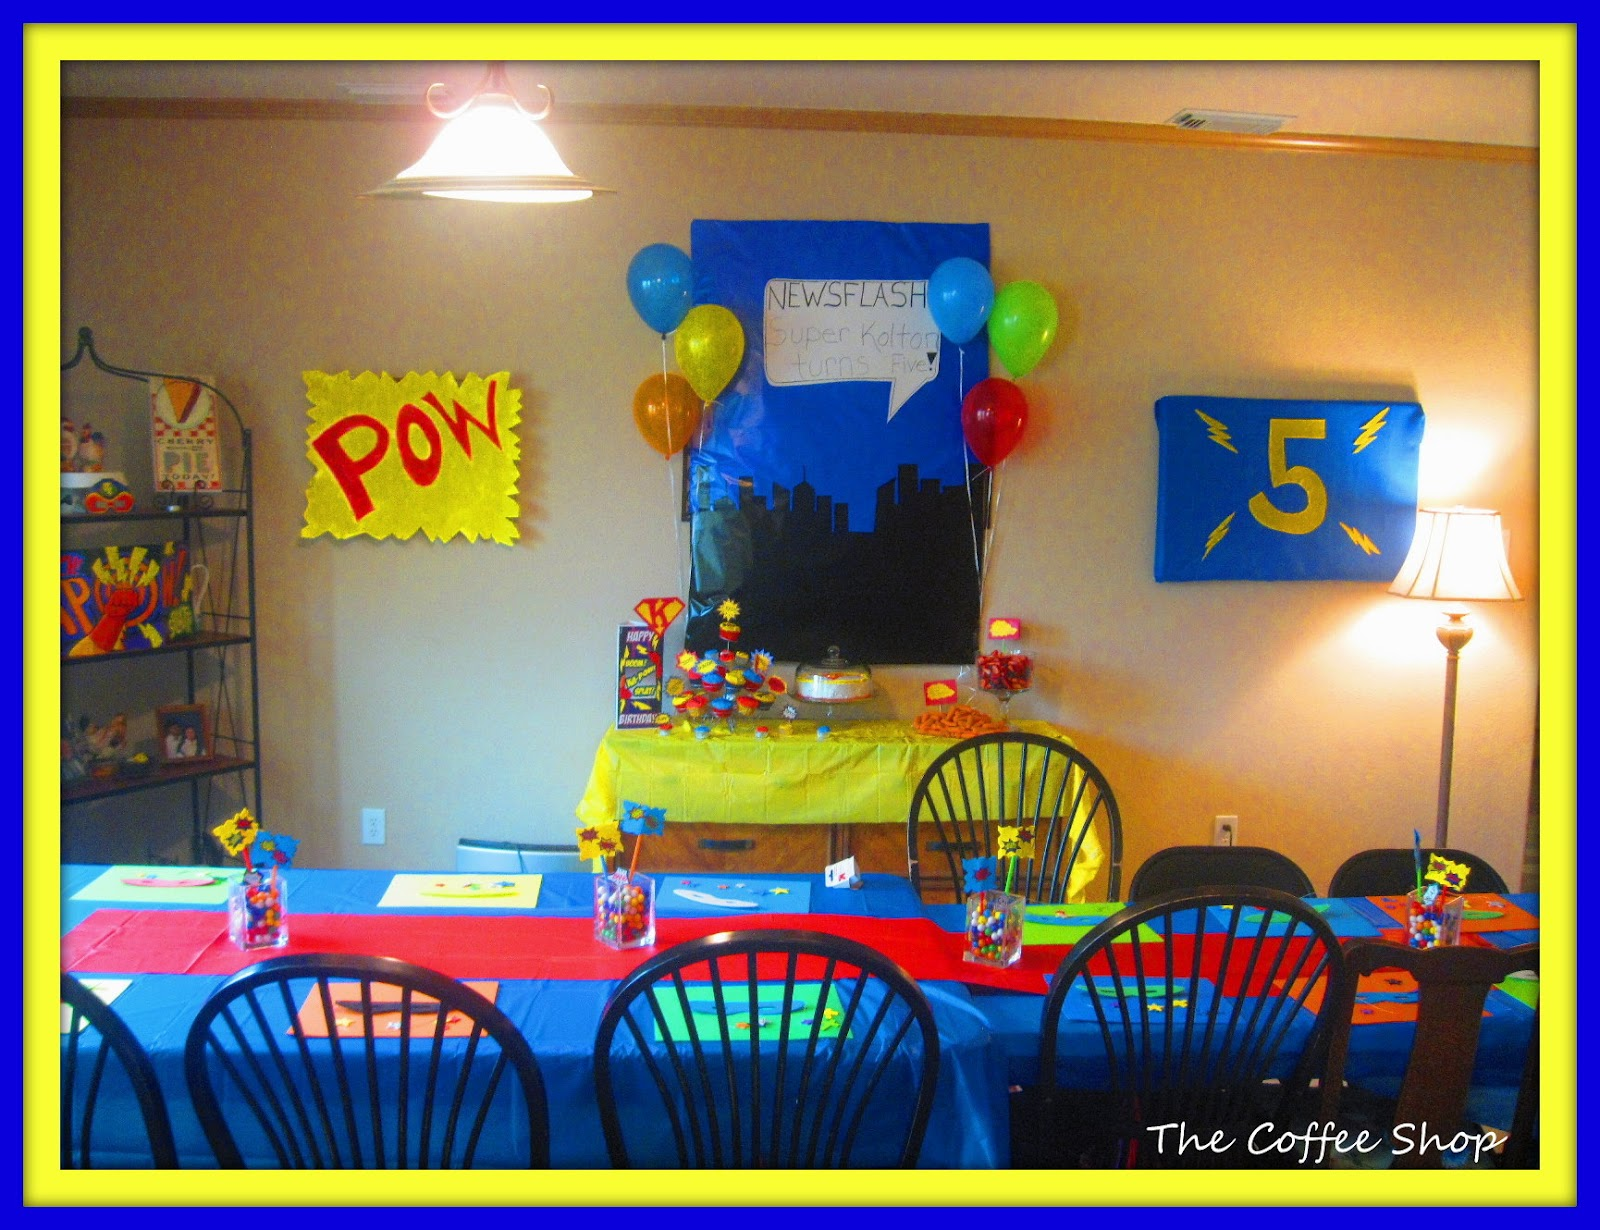 Tgf Decoration The Coffee Shop Happy Monday And A Super Party